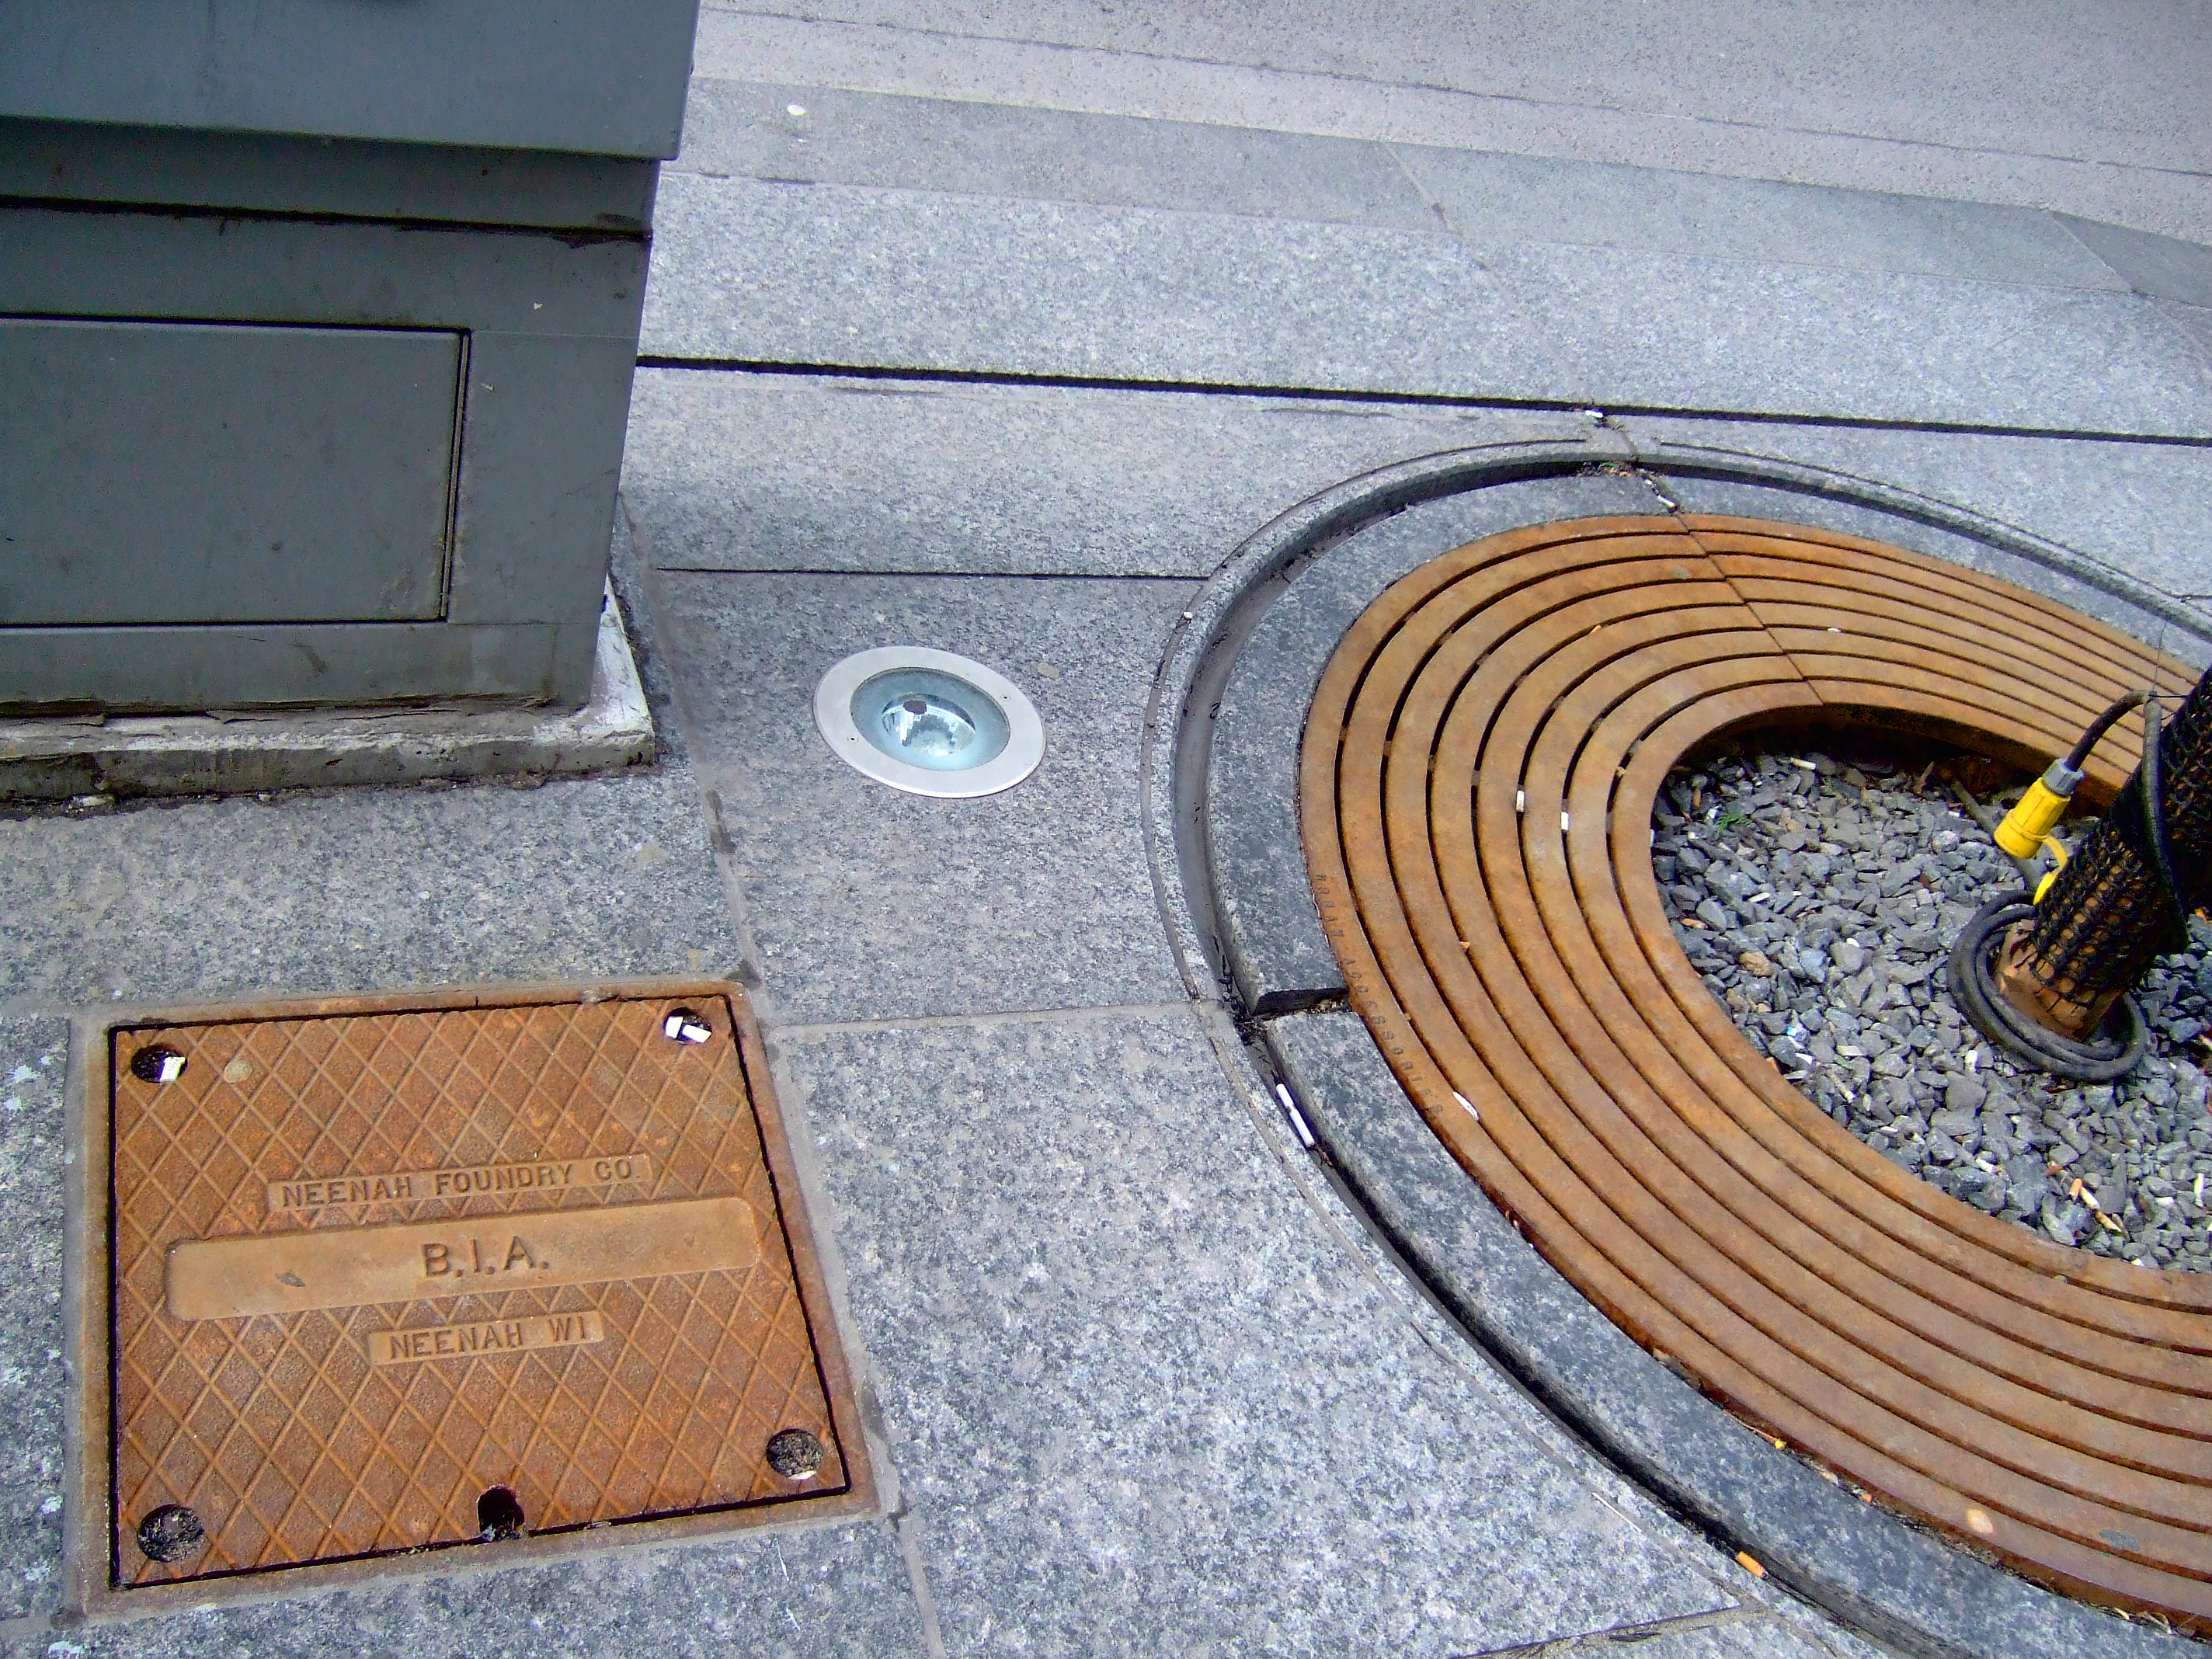 """Figure 7. BIA streetscape treatments to public sidewalks within the Bloor-Yorkville BIA zone. Street furniture """"props"""" are funded by compulsory dues received from BIA members annually — a private levy tool legalized by the province in 1970, giving rise to the Canadian BIA model. Props for public spaces in Bloor-Yorkville BIA feature granite-slabbed sidewalks, sunken pot lights for new trees, and stone """"benches"""" engineered to minimize lounging or resting time (or accommodation for denizens with disabilities). This bench design (not shown) deprives the public realm of the means to accommodate denizens with reasonably comfortable seating; rather, the design coaxes denizens to minimize their sitting presence and seek out private sites of consumption which promise not only the illusion of public spacing (e.g., a sidewalk café), but also have cosier seating configurations. Within the Bloor-Yorkville BIA, City of Toronto street furniture is missing — including the absence of ubiquitous city bike ring posts designed to secure two bikes, replaced by BIA-approved bike lock """"columns"""" (which have difficulty accommodating more than one bike and are incompatible with several popular bike-locking solutions). [Idlewild]"""